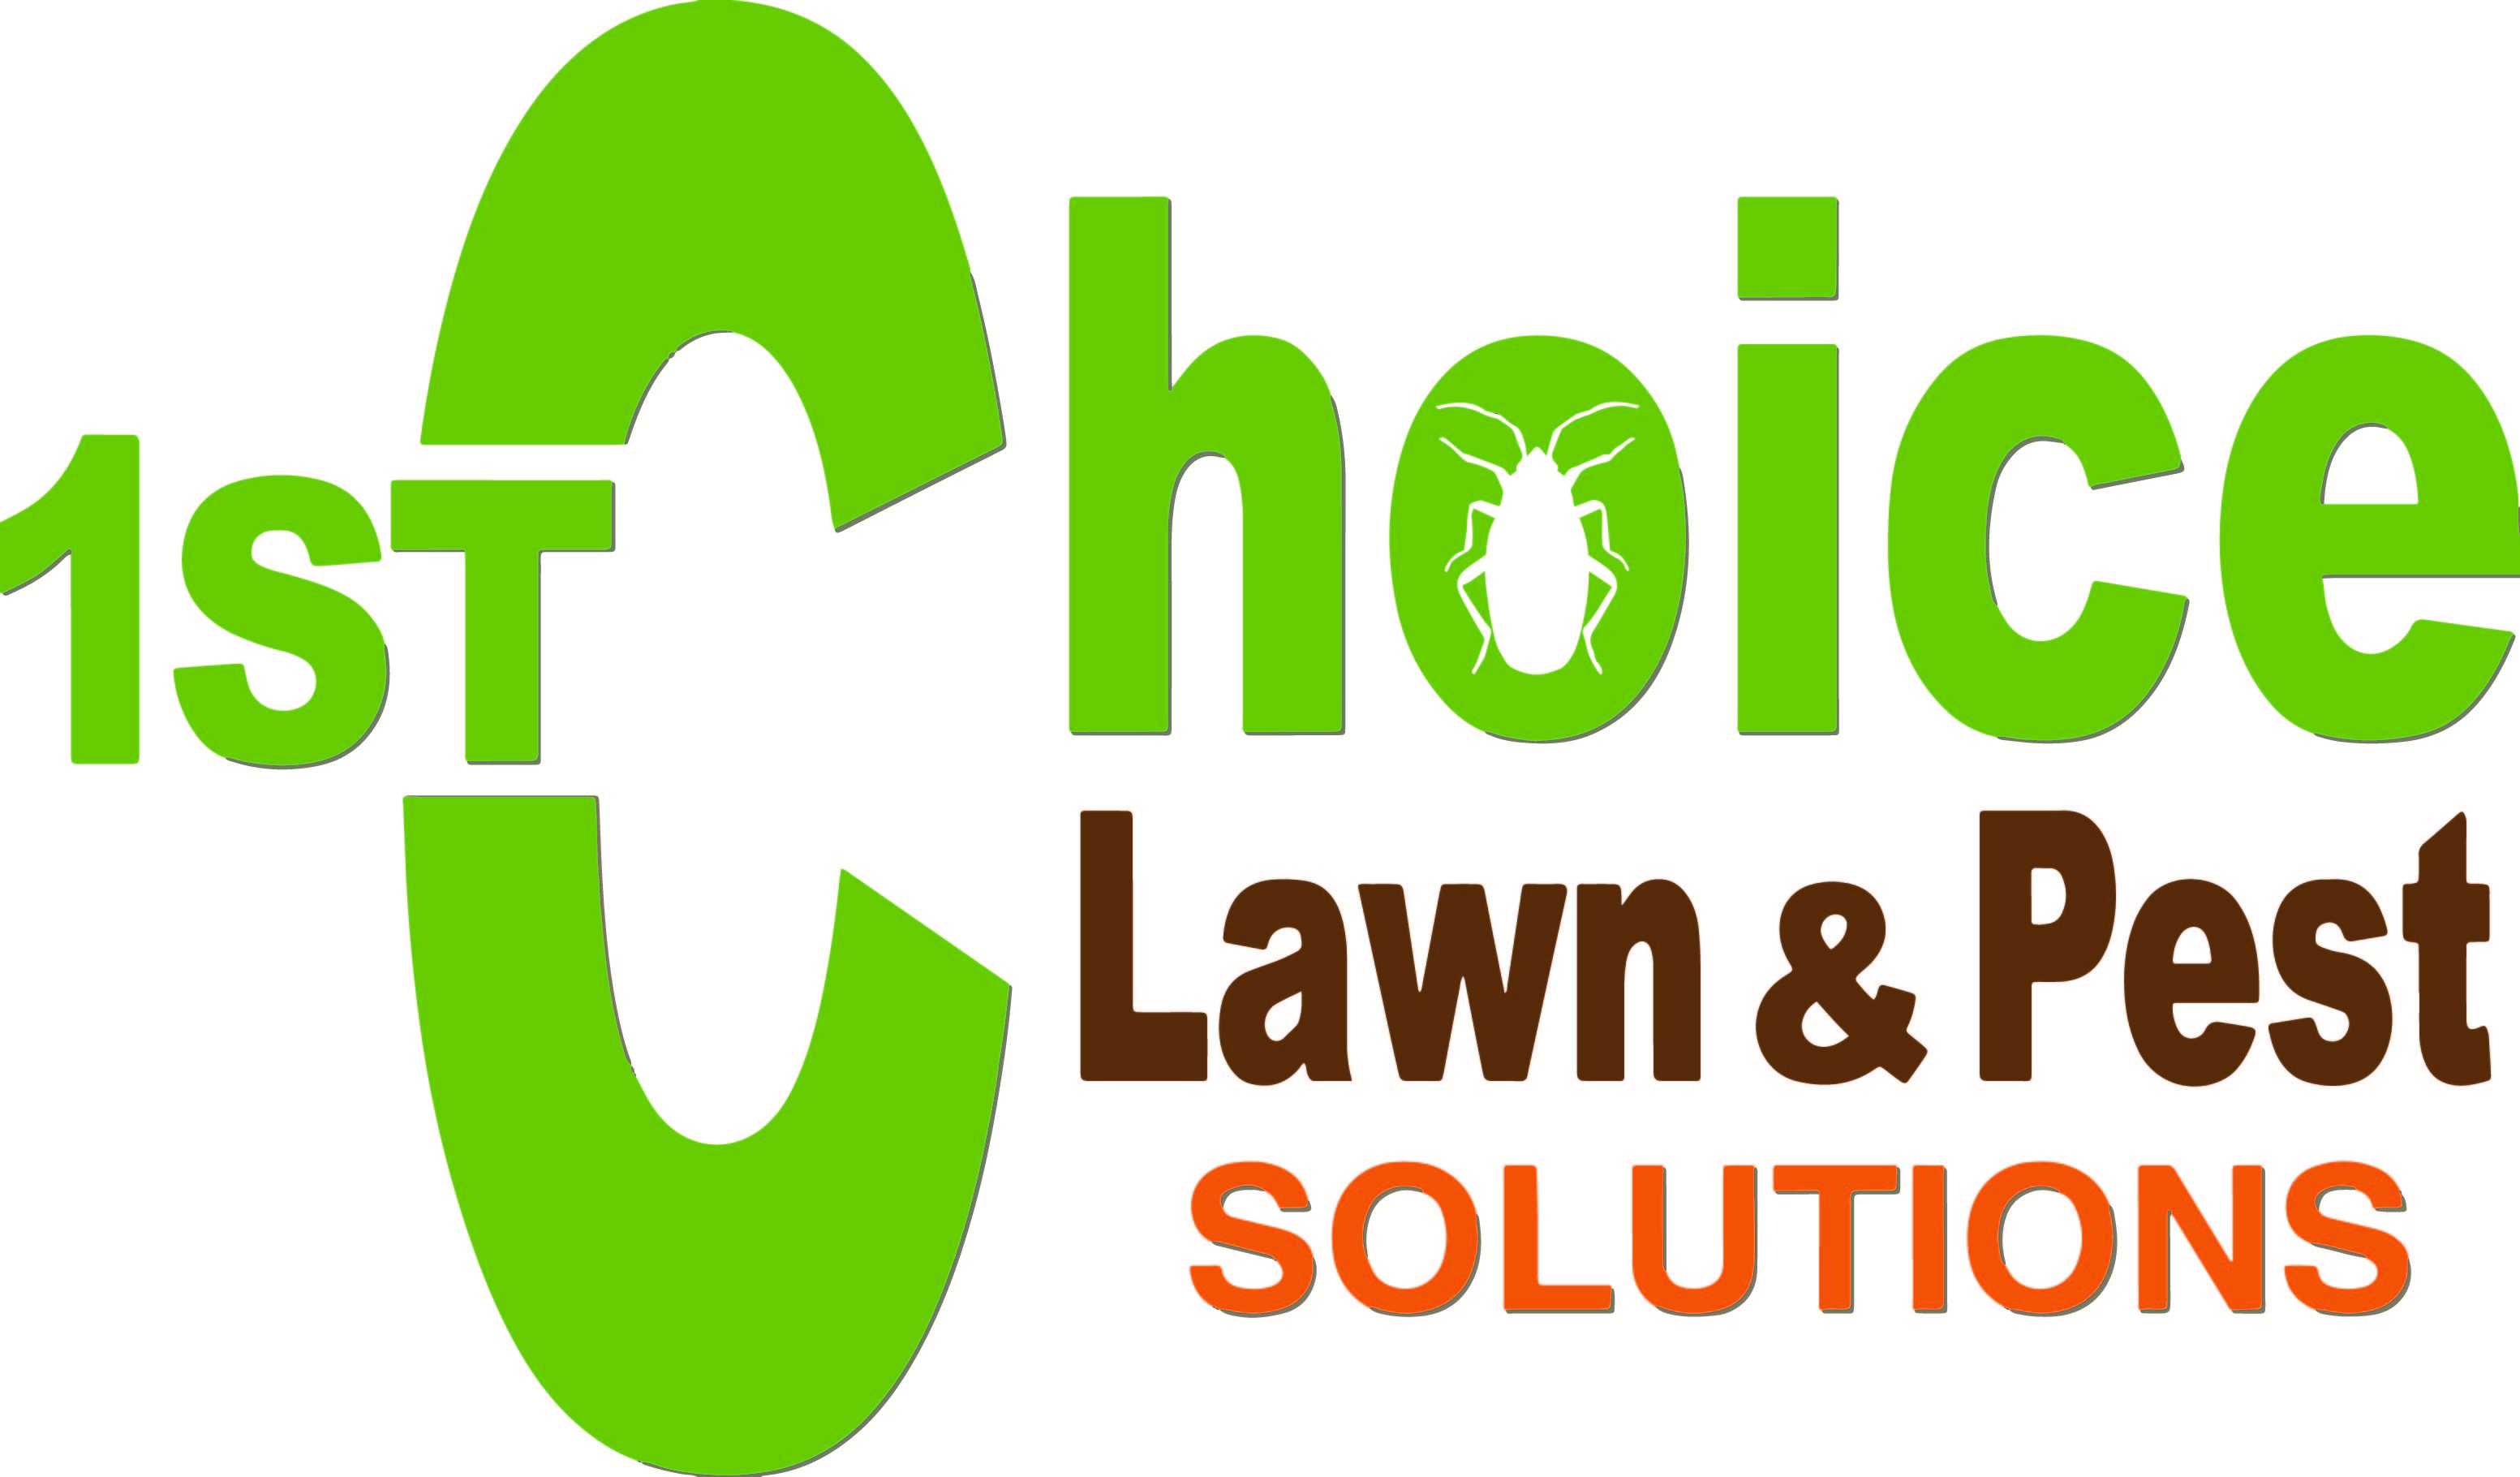 1st Choice Lawn & Pest Solutions